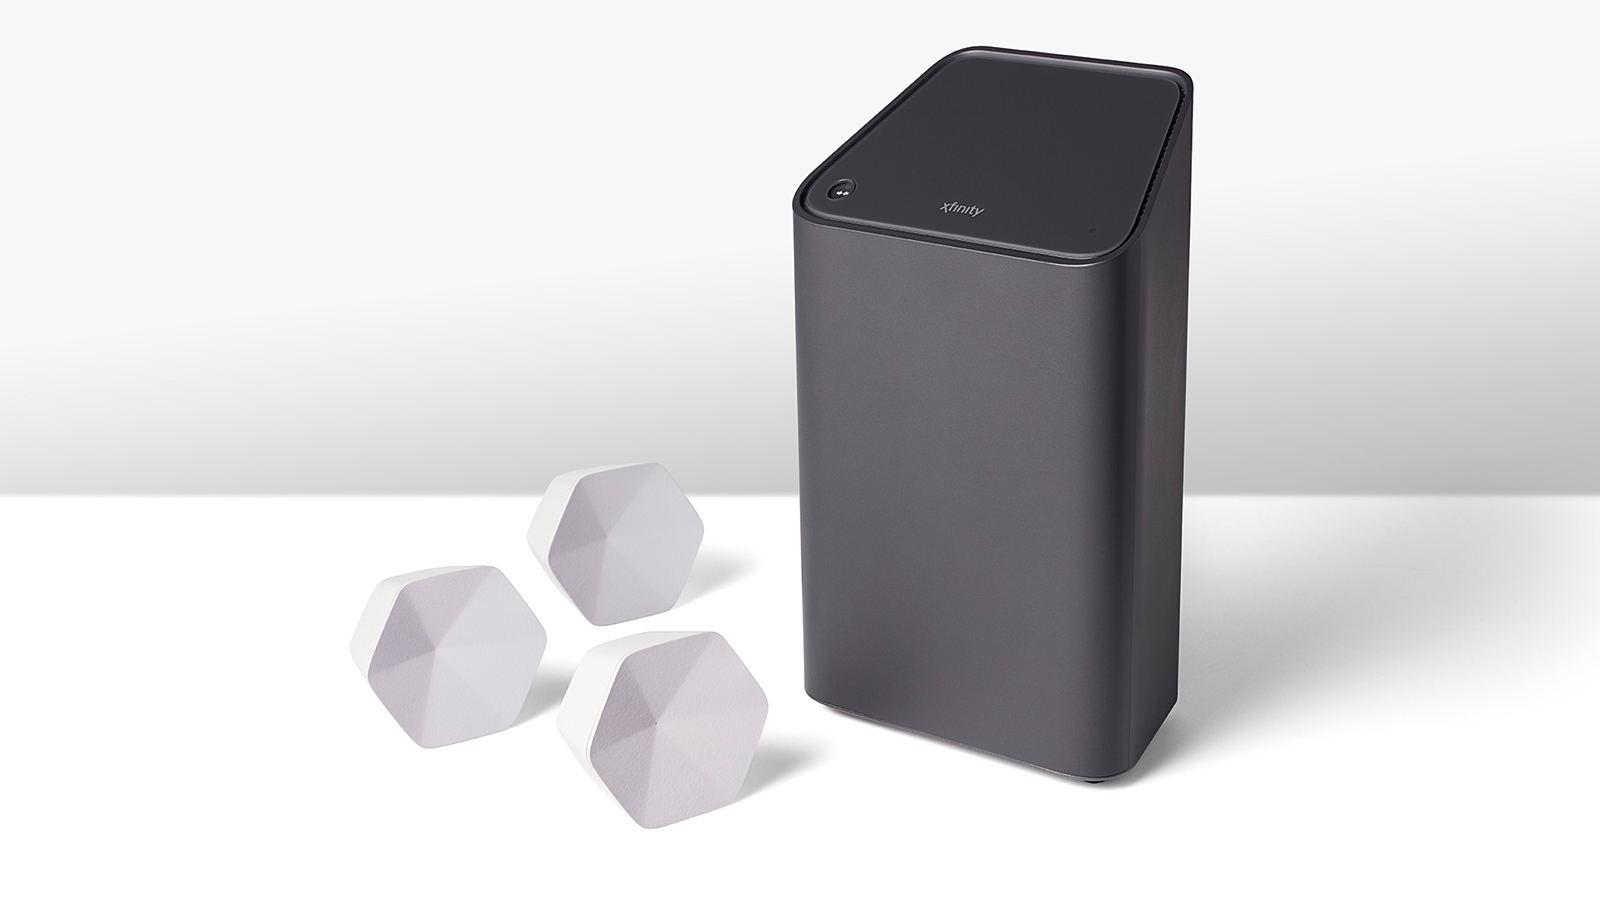 Comcast launches a mesh WiFi system with the $119 xFi Pod kit